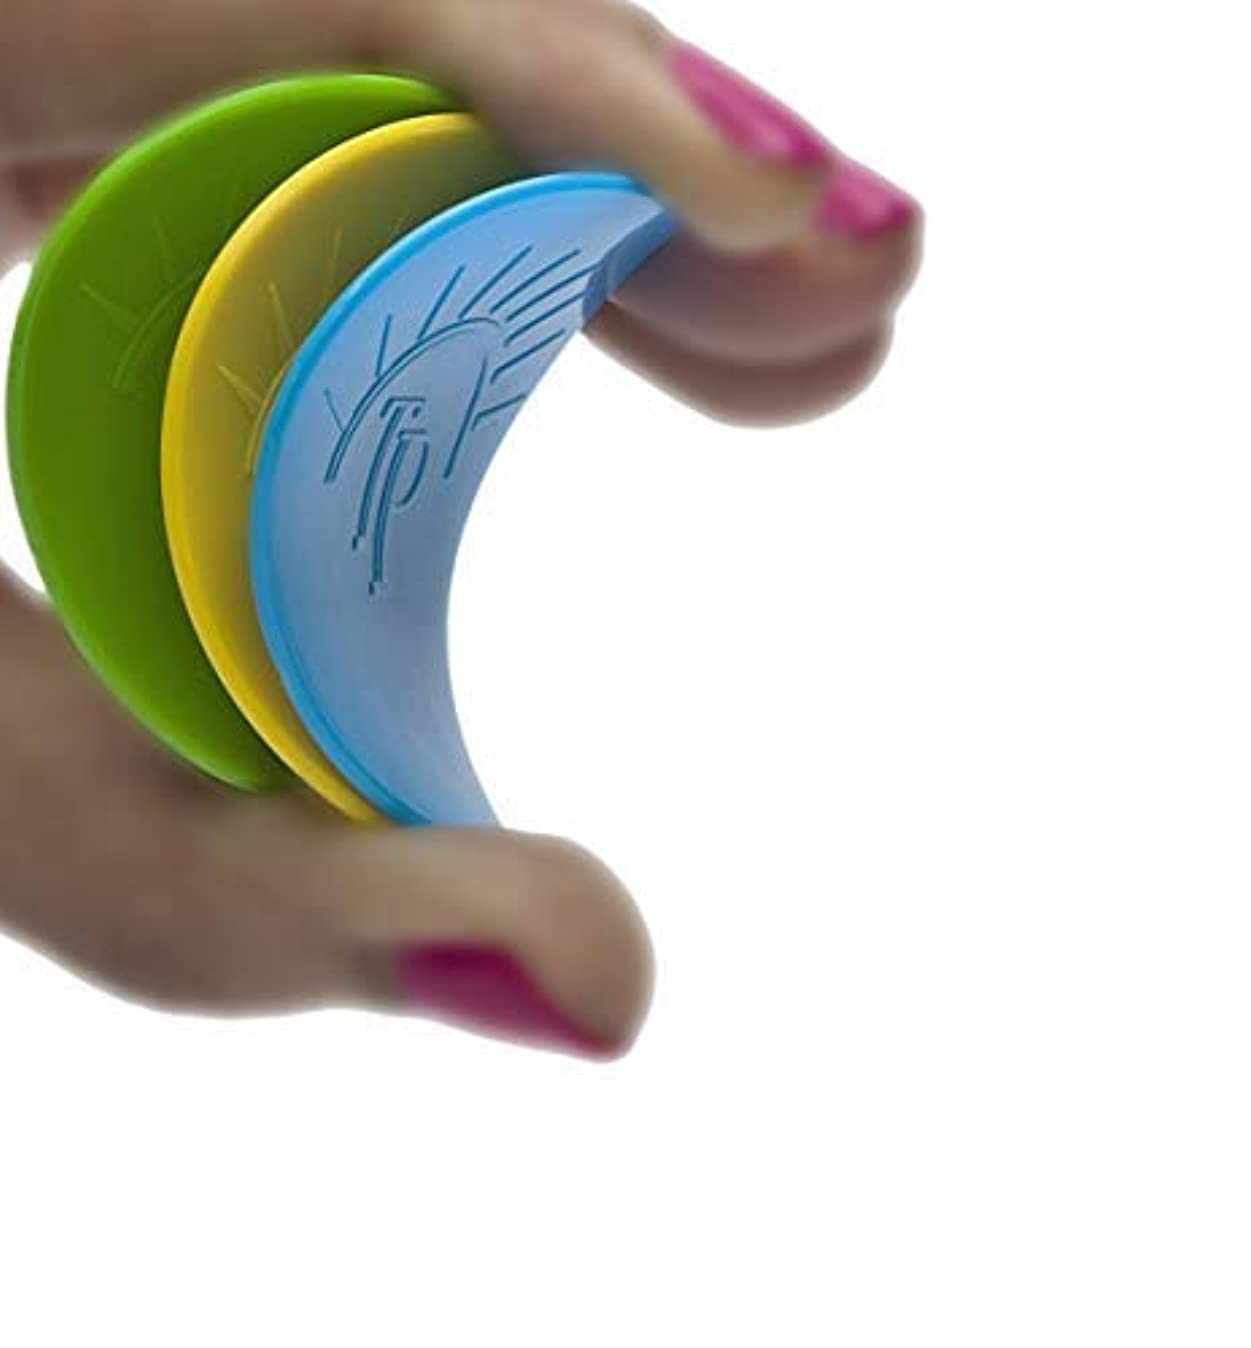 Think Picks and Think Pick Pocket, Premium Quality and ergonomically Designed to Stimulate Your Toddler's Brain k9723991182